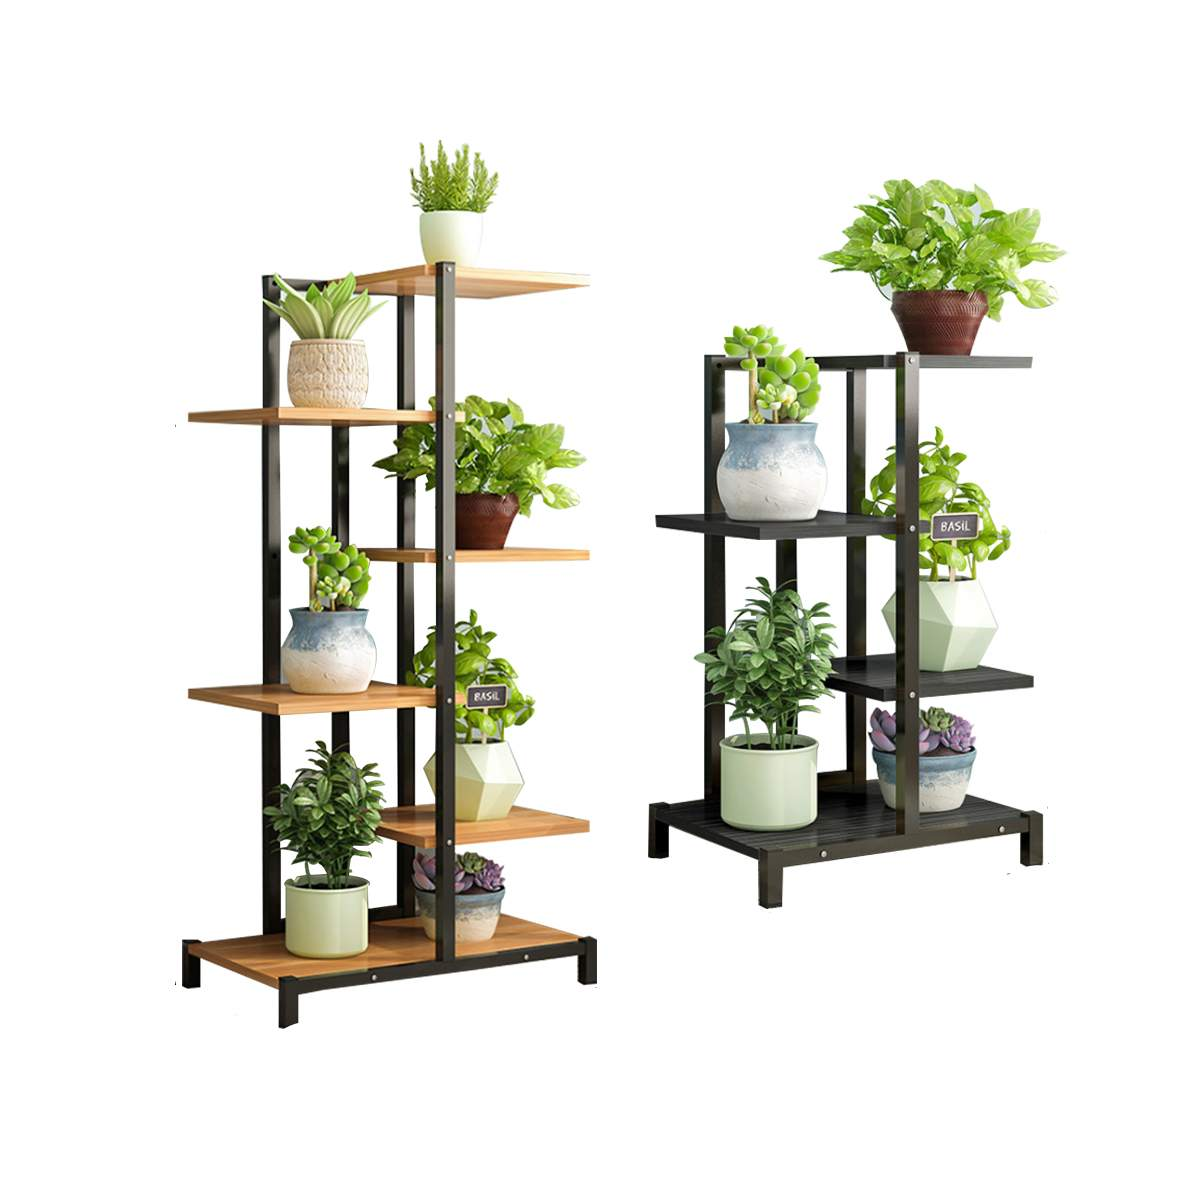 Multi-layer Floor Flower Stand Plant Shelves Balcony Living Room Interior Modern Decoration Floor Standing Flower Shelf Storage